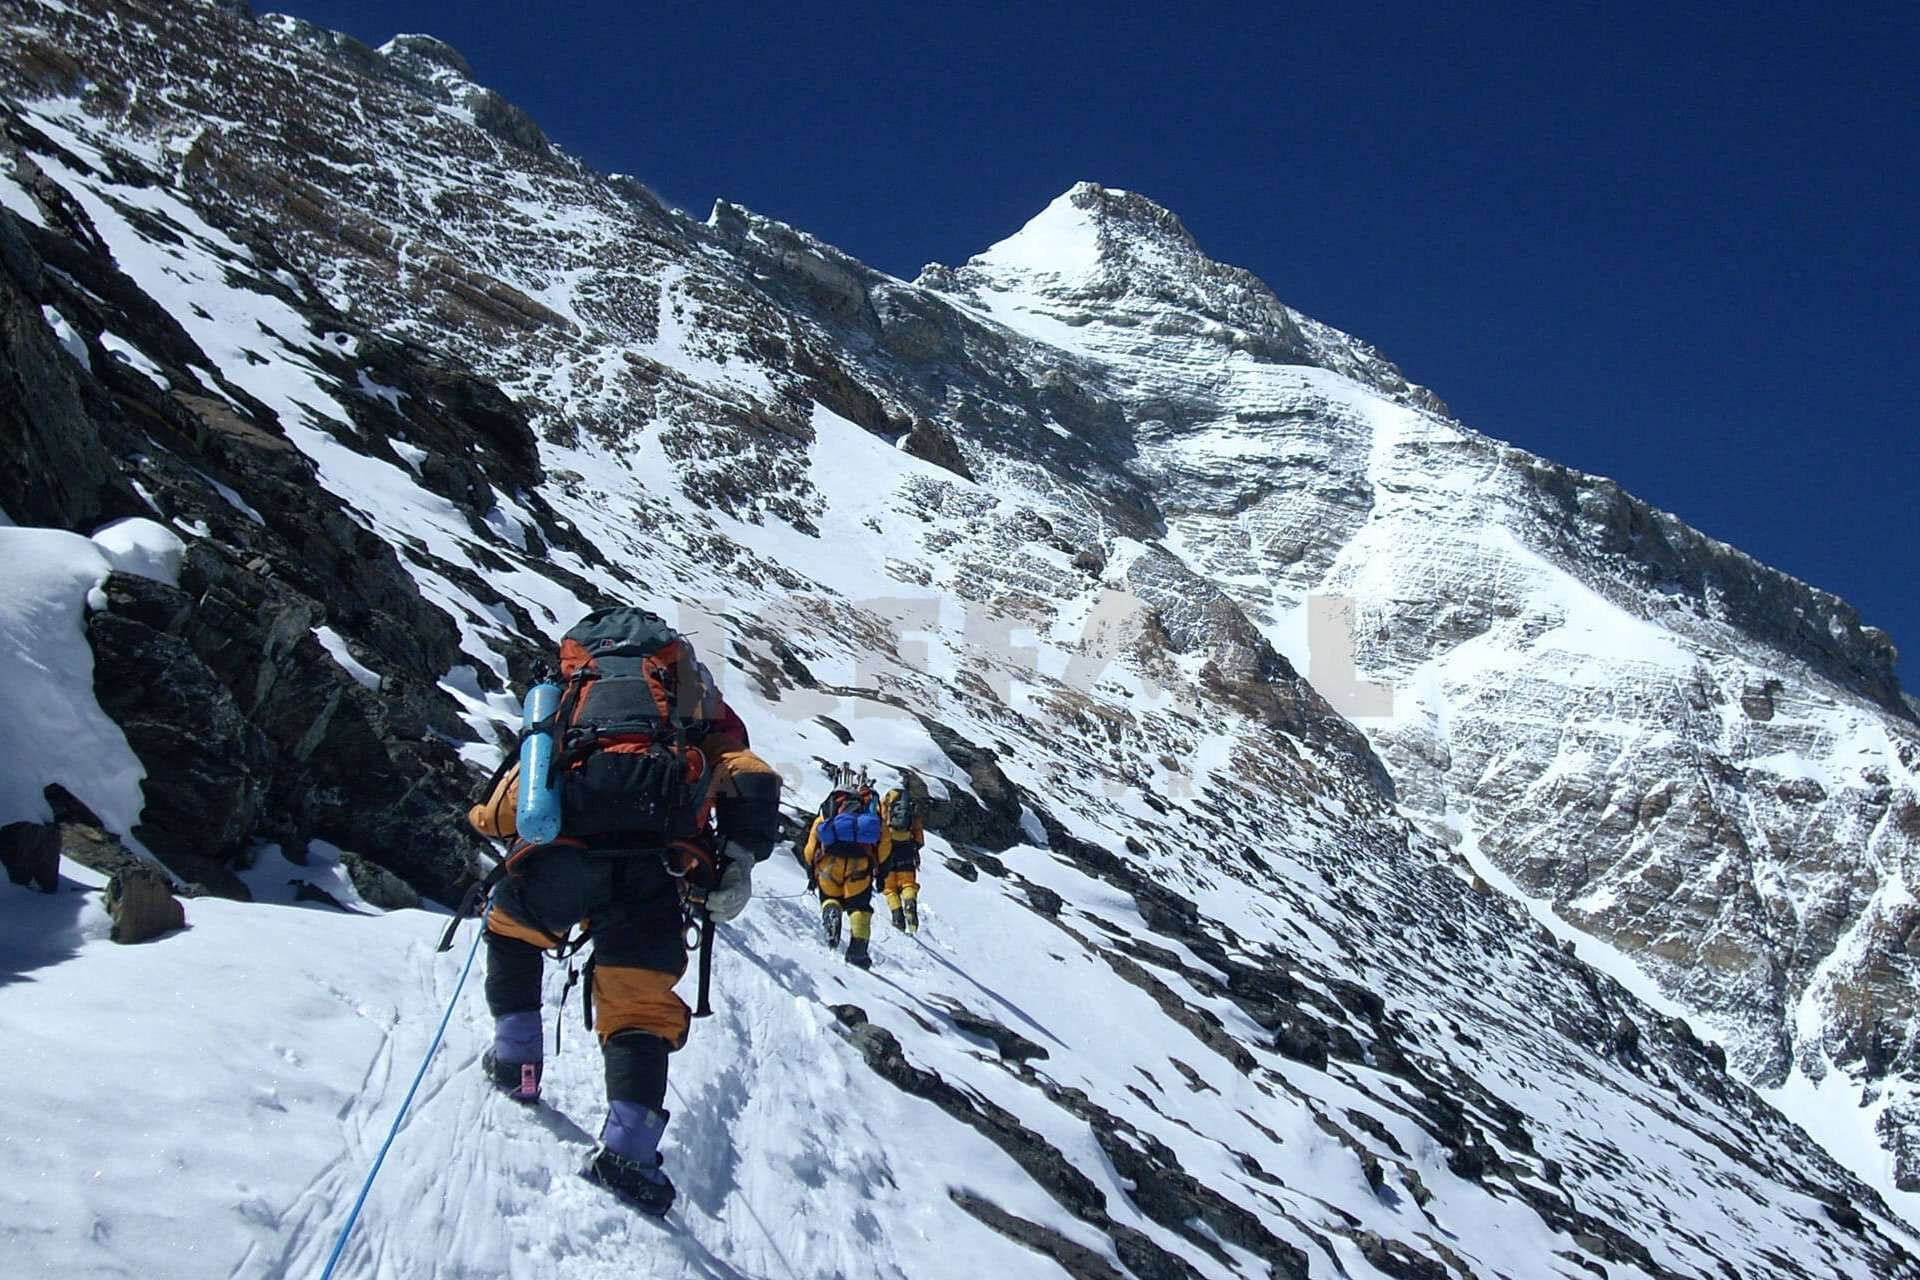 mountain climbing expeditions challenged - HD1905×1153